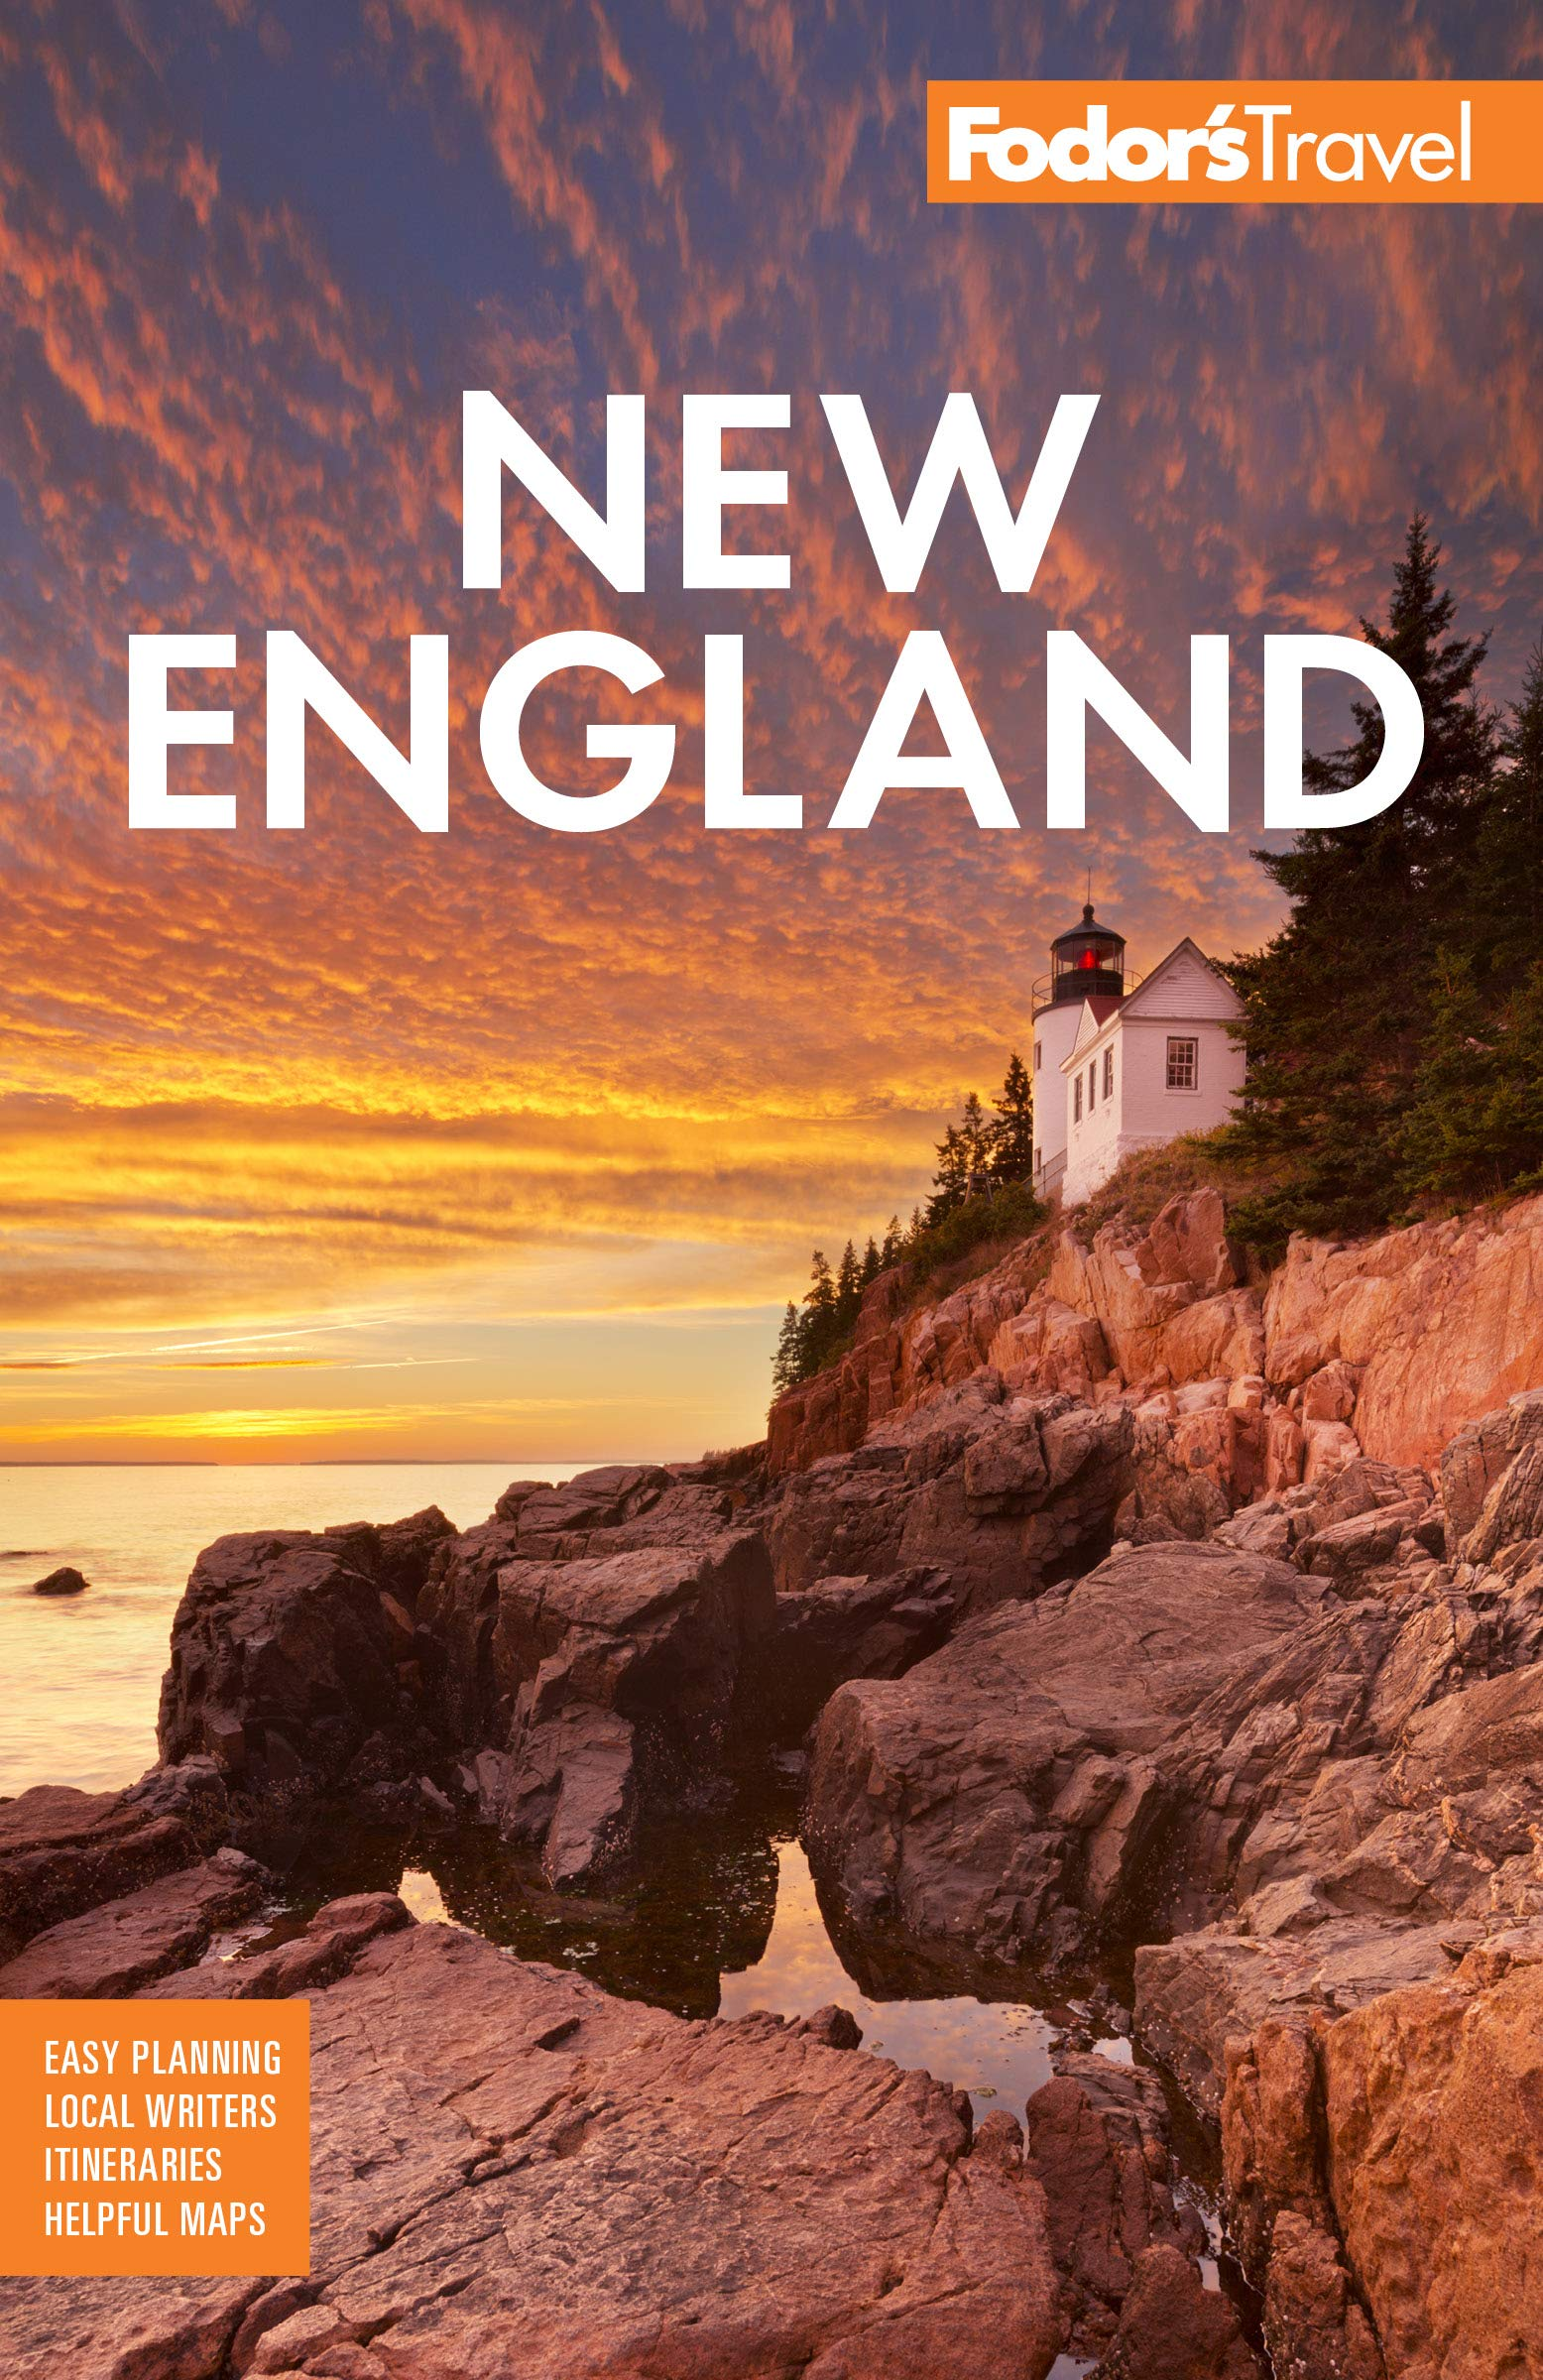 Fodors New England Foliage Full color product image